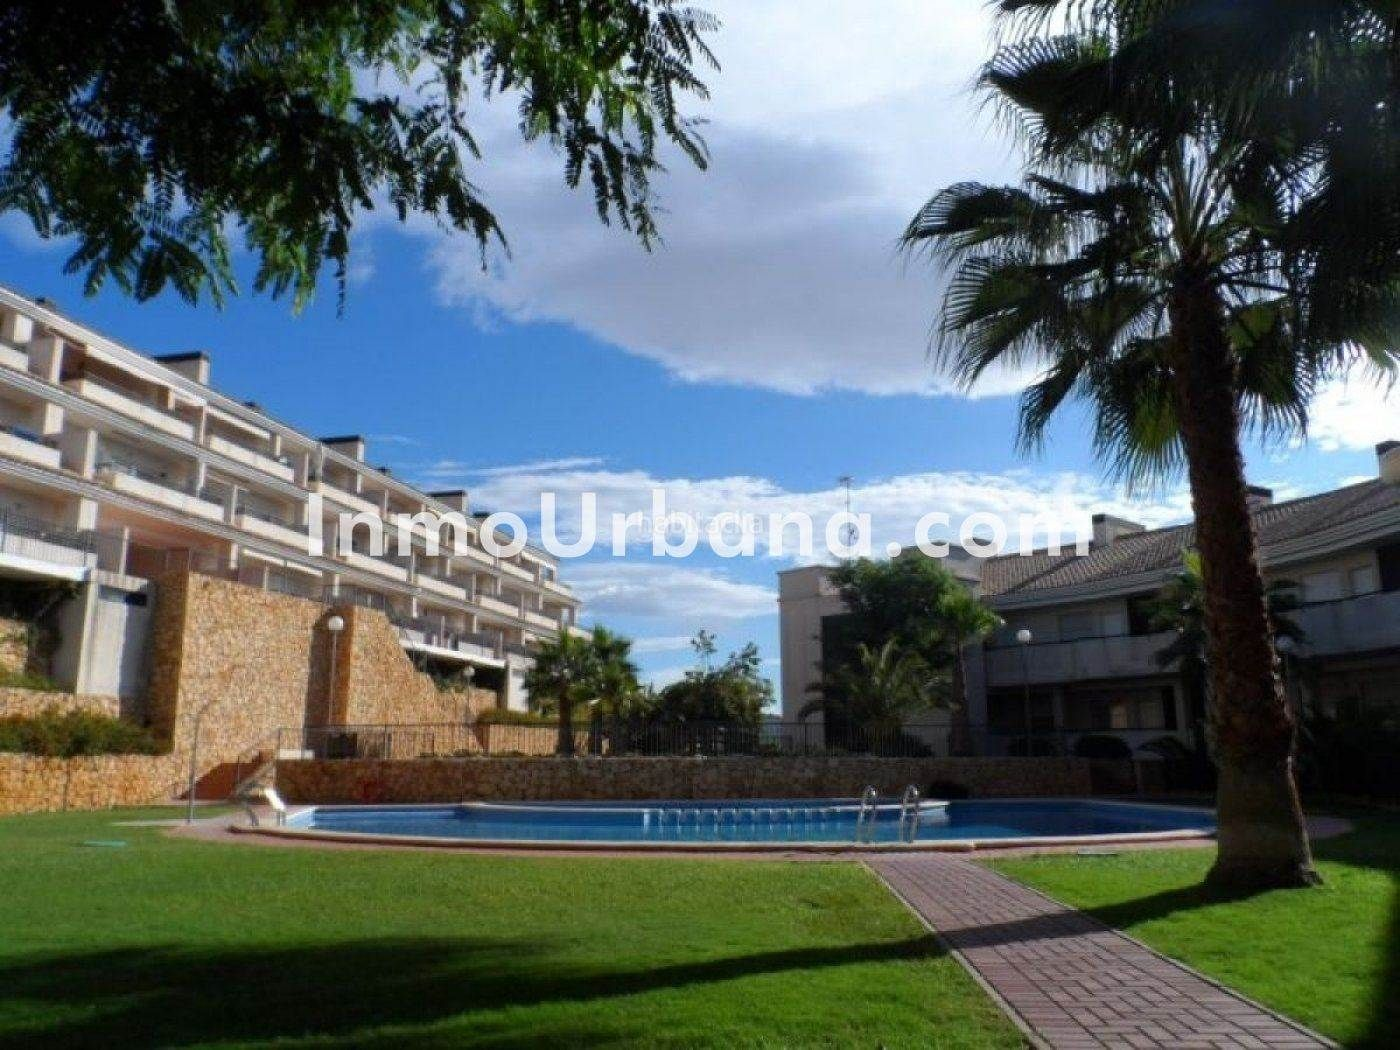 Appartement à Monforte del Cid. Apartamento en venta, alenda golf, con piscina, plaza de parking